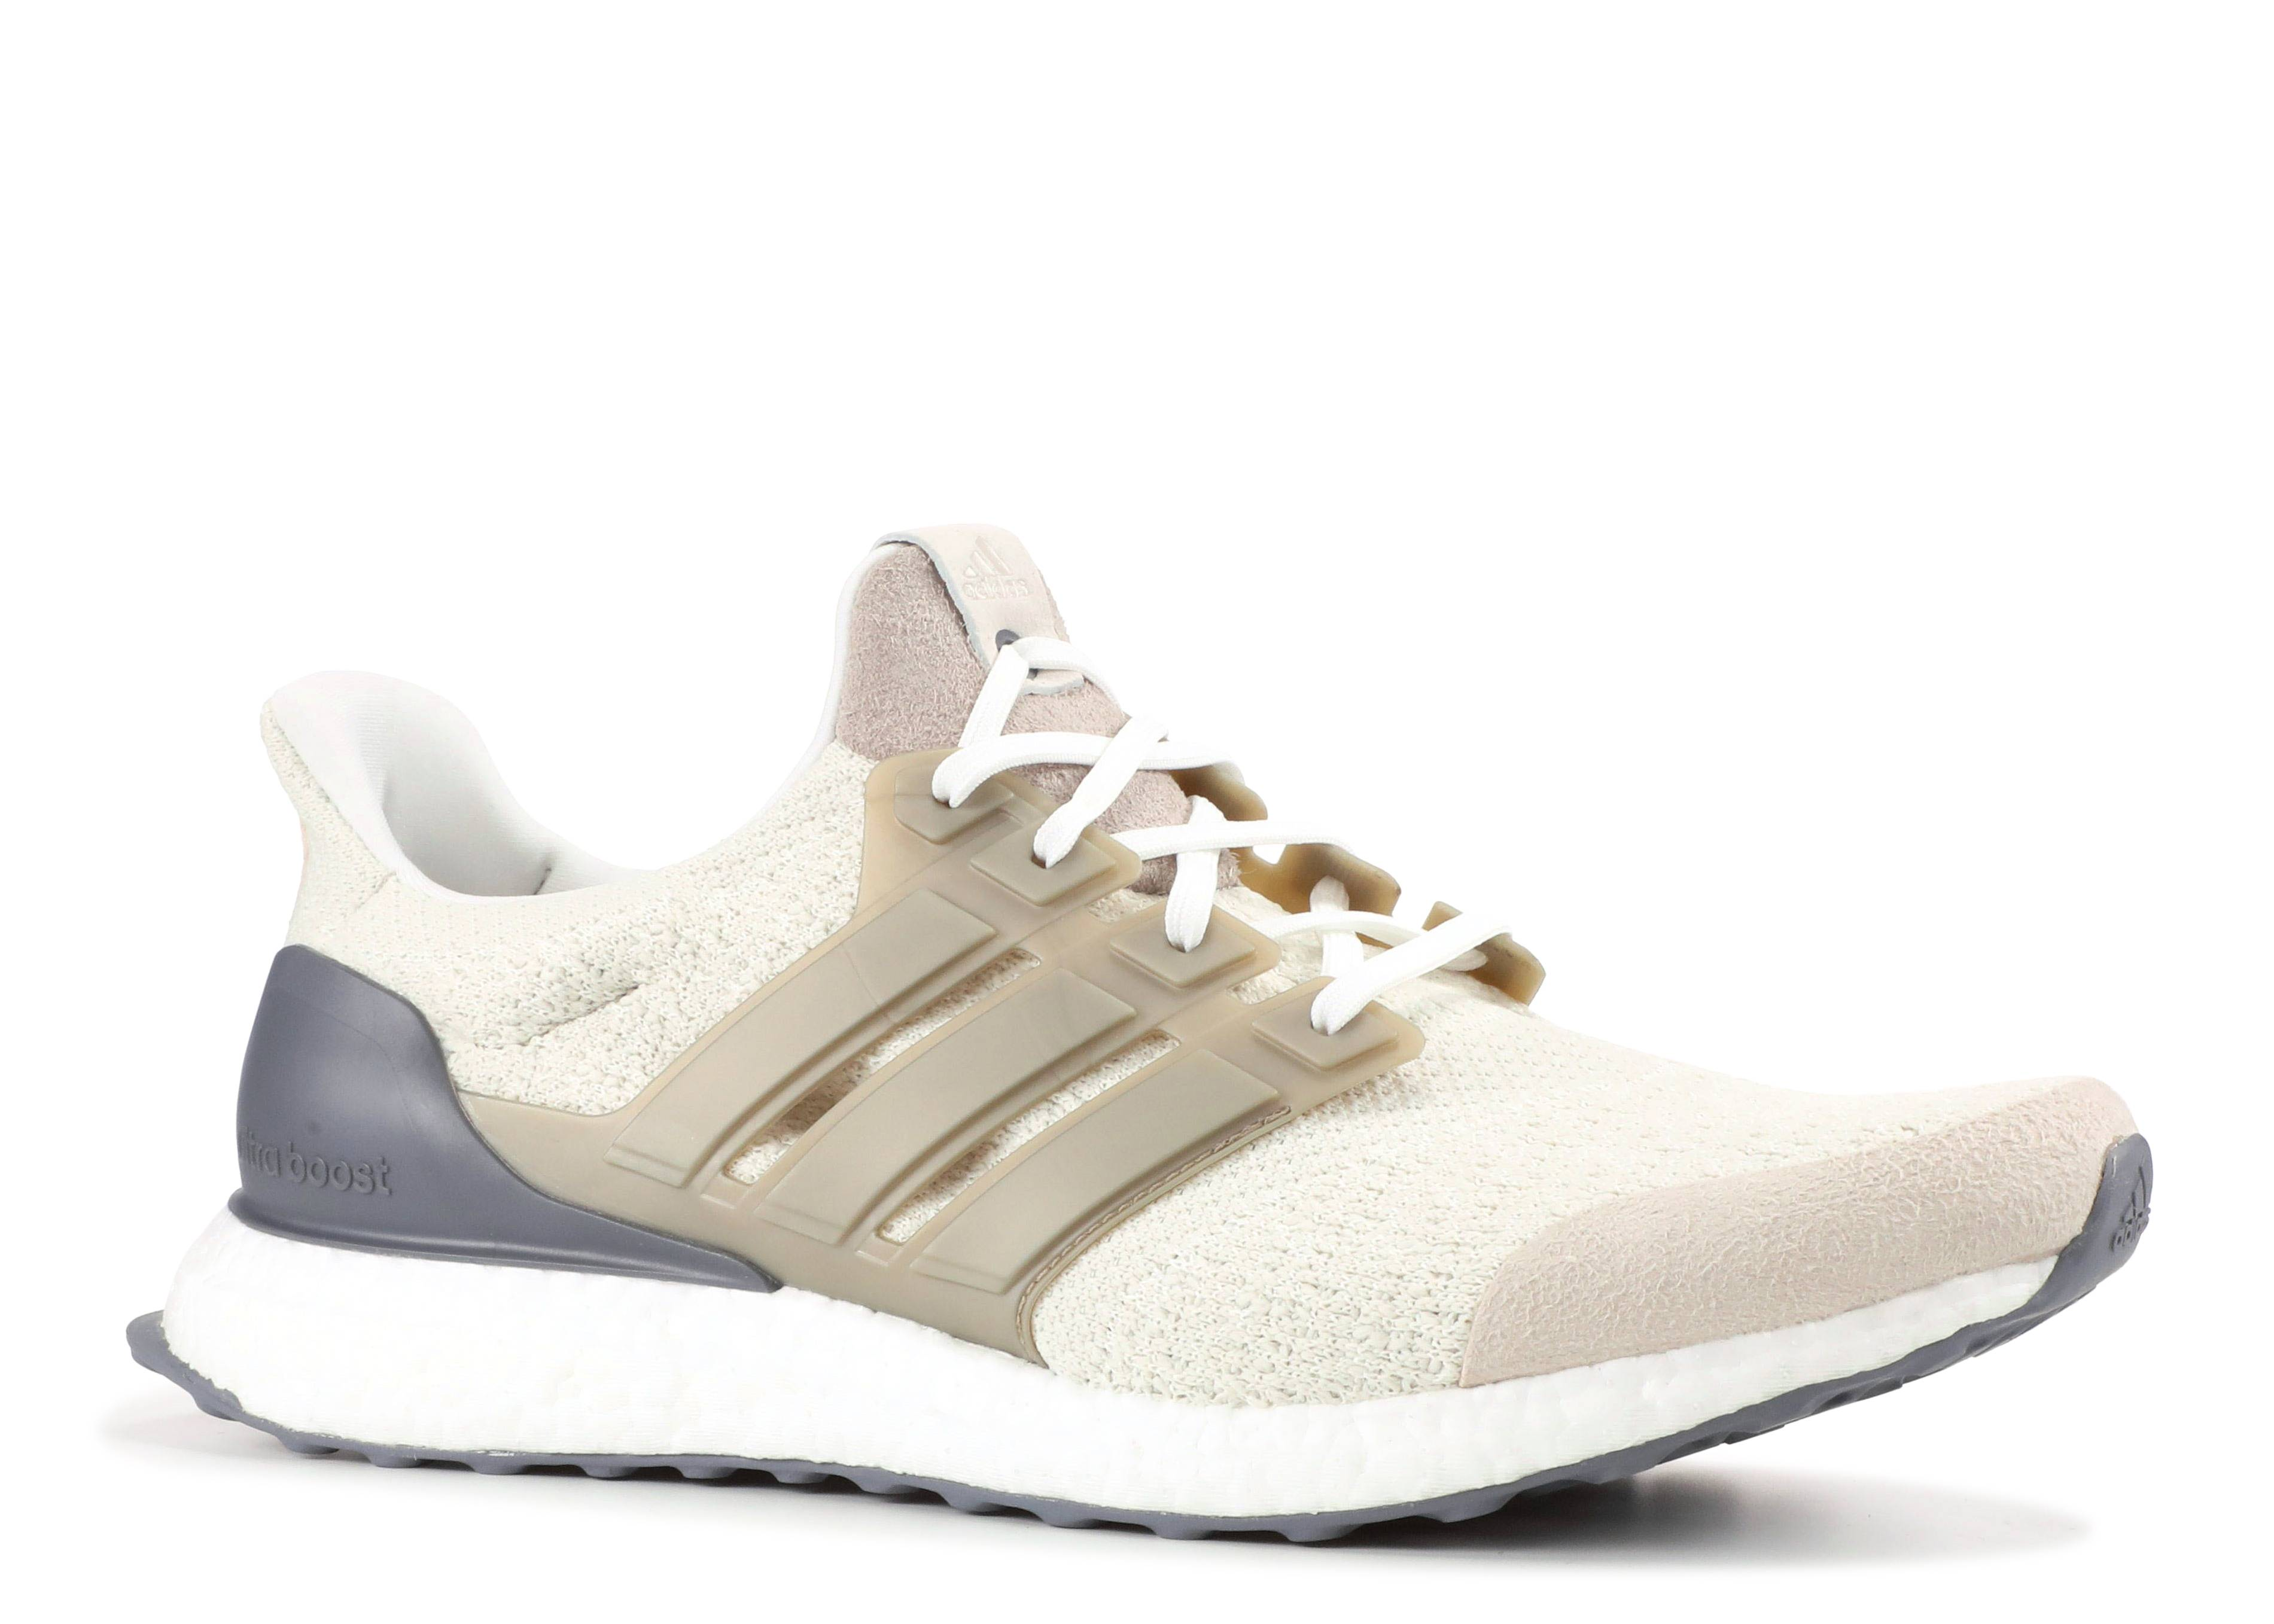 dbf65fb0b4bb8 ULTRABOOST LUX - Adidas - DB0338 - vintage white chocolate brown ...